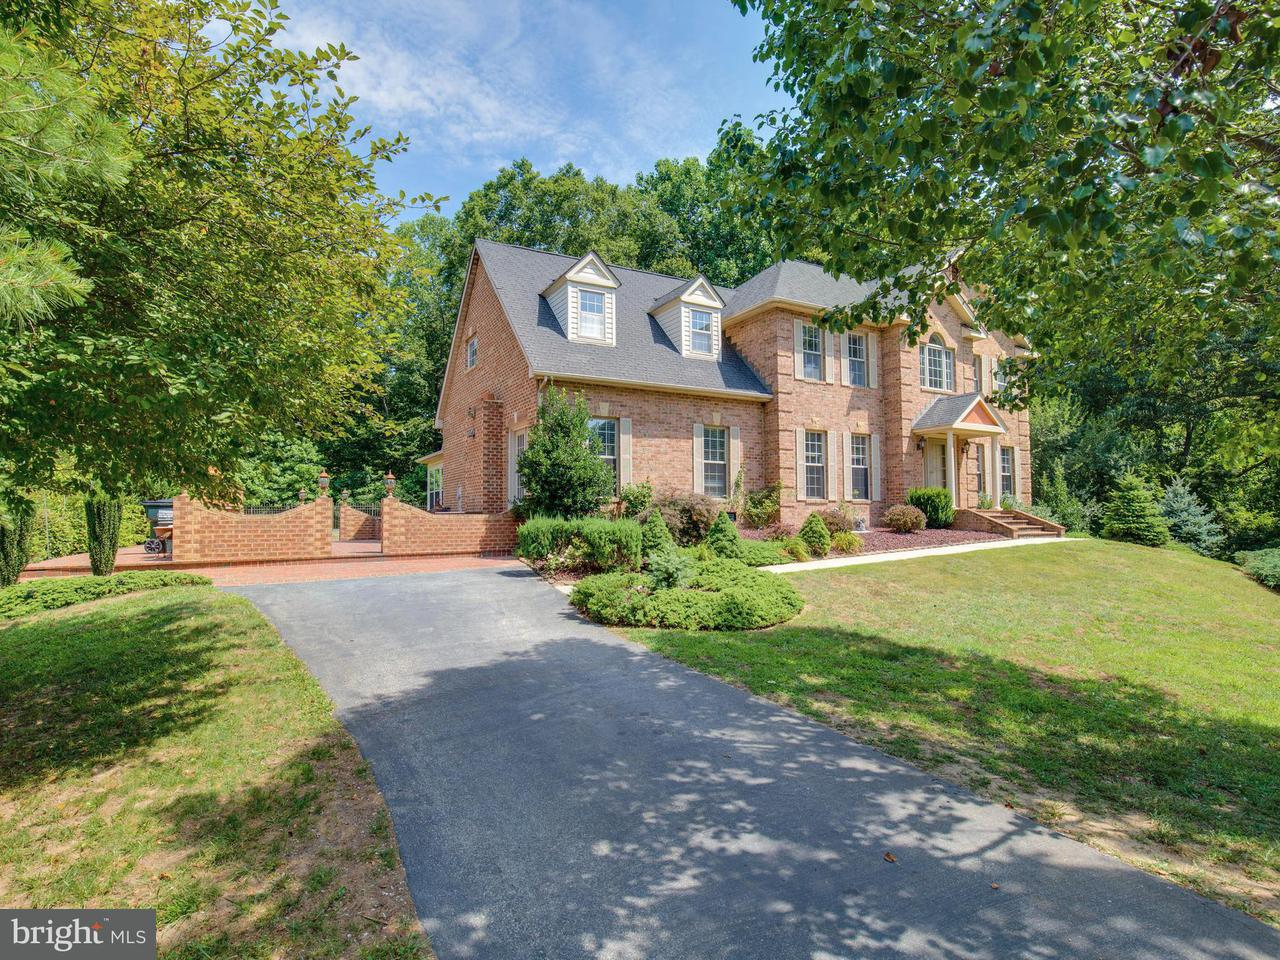 Casa Unifamiliar por un Venta en 16700 SWANSON COVE Court 16700 SWANSON COVE Court Hughesville, Maryland 20637 Estados Unidos